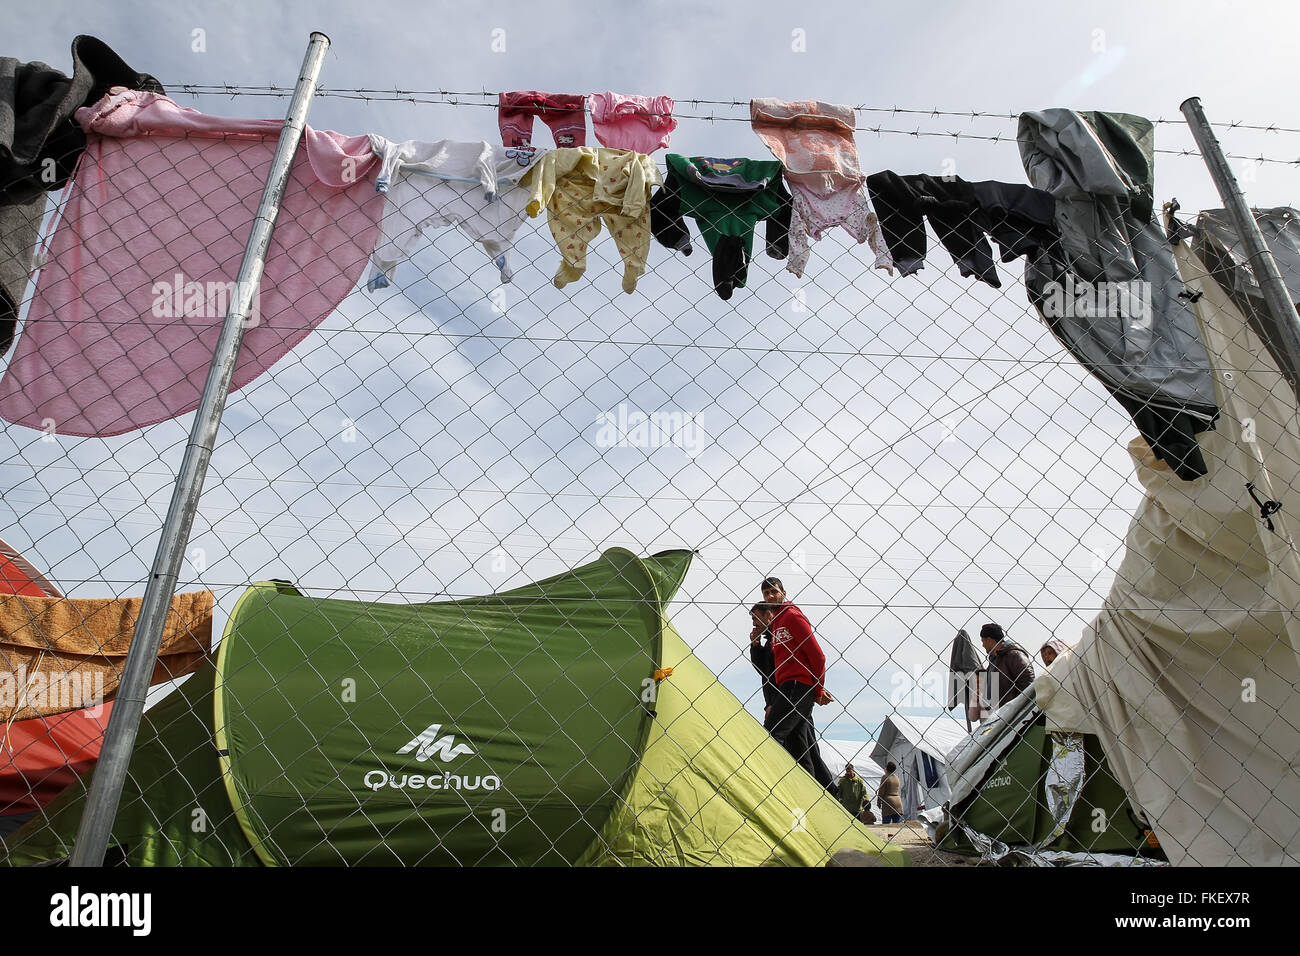 Idomeni, Greece. 8th March, 2016.Thousands of immigrants are in a wait at the border between Greece and FYROM waiting - Stock Image